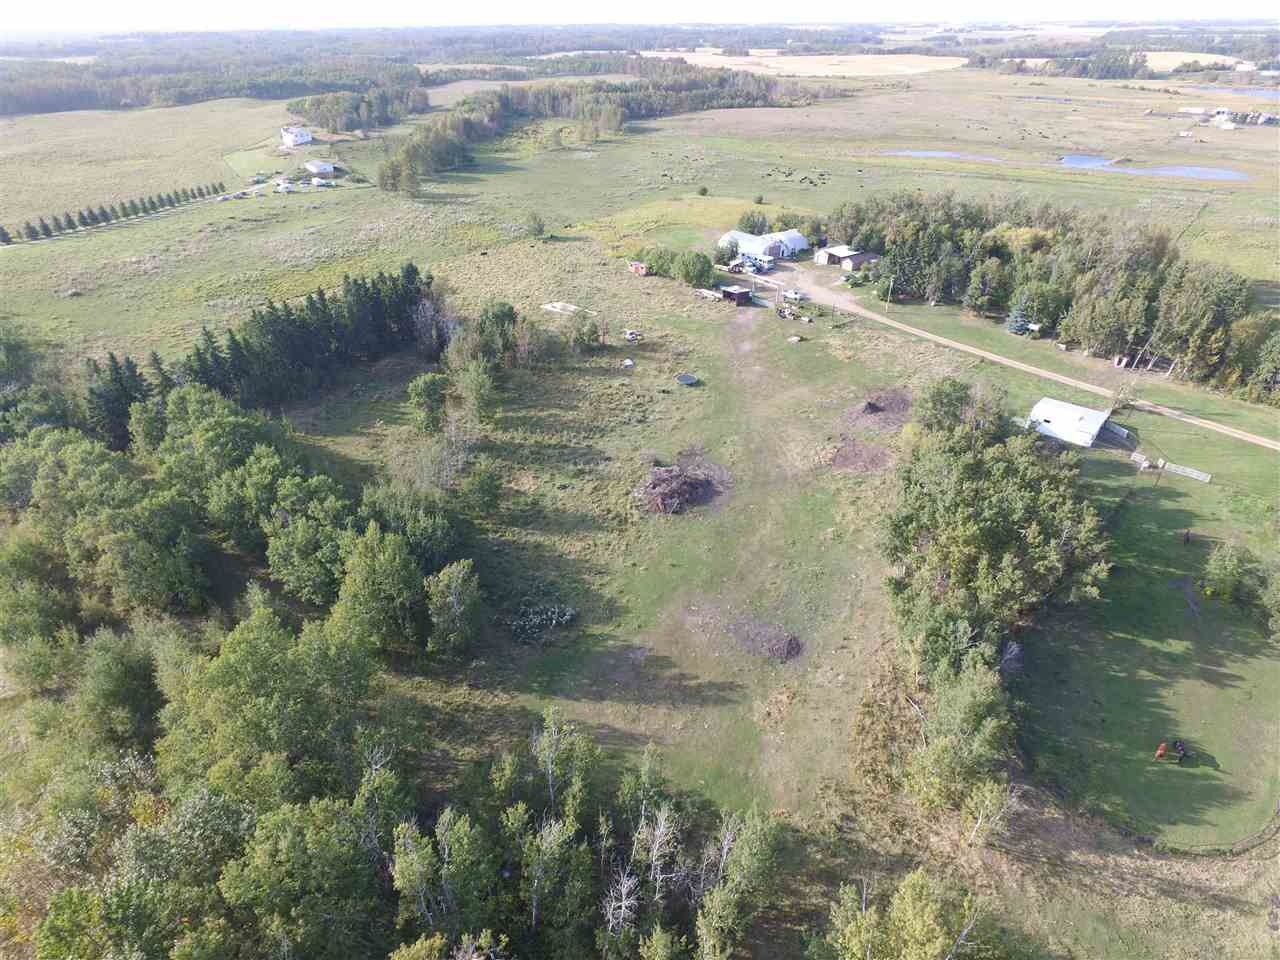 Photo 45: Photos: 472050A Hwy 814: Rural Wetaskiwin County House for sale : MLS®# E4213442